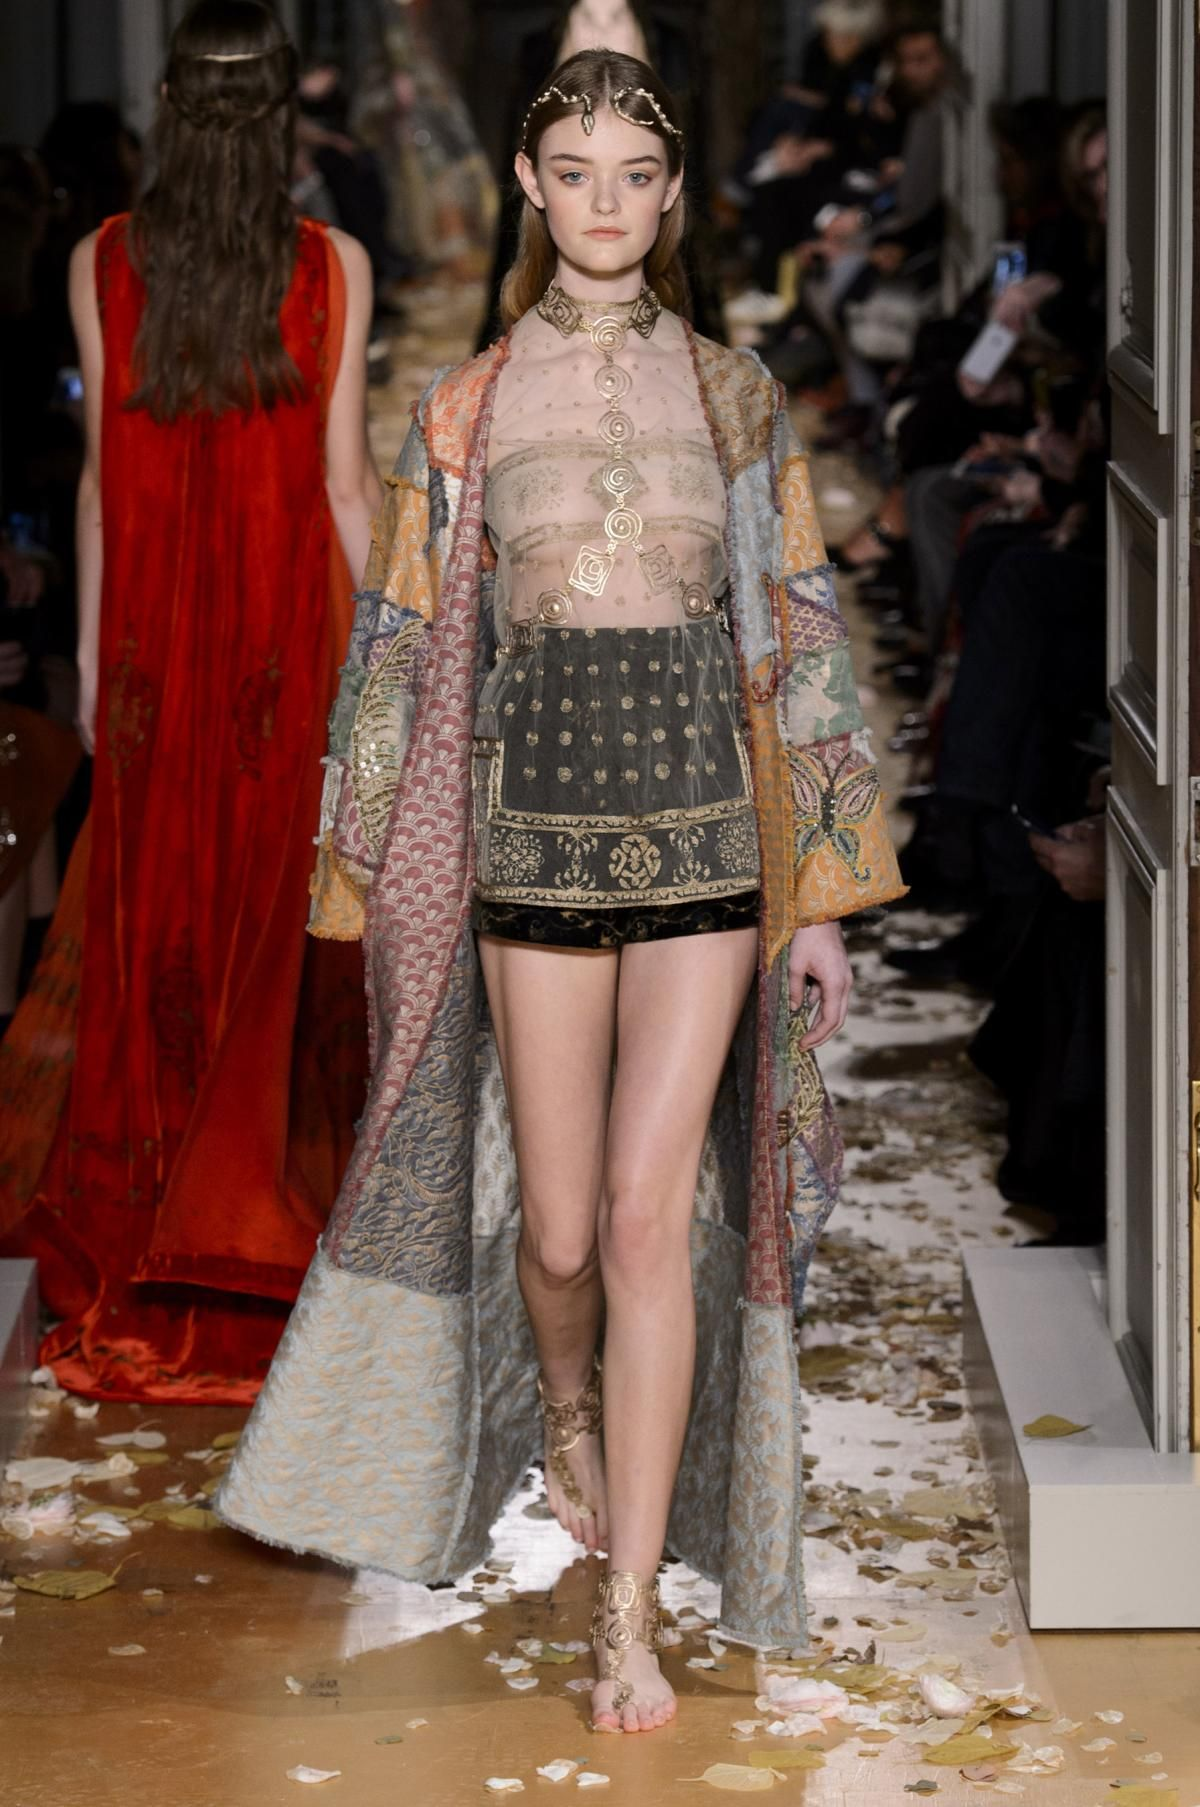 A look from the Maison Valentino spring 2016 couture collection. Photo: Imaxtree.